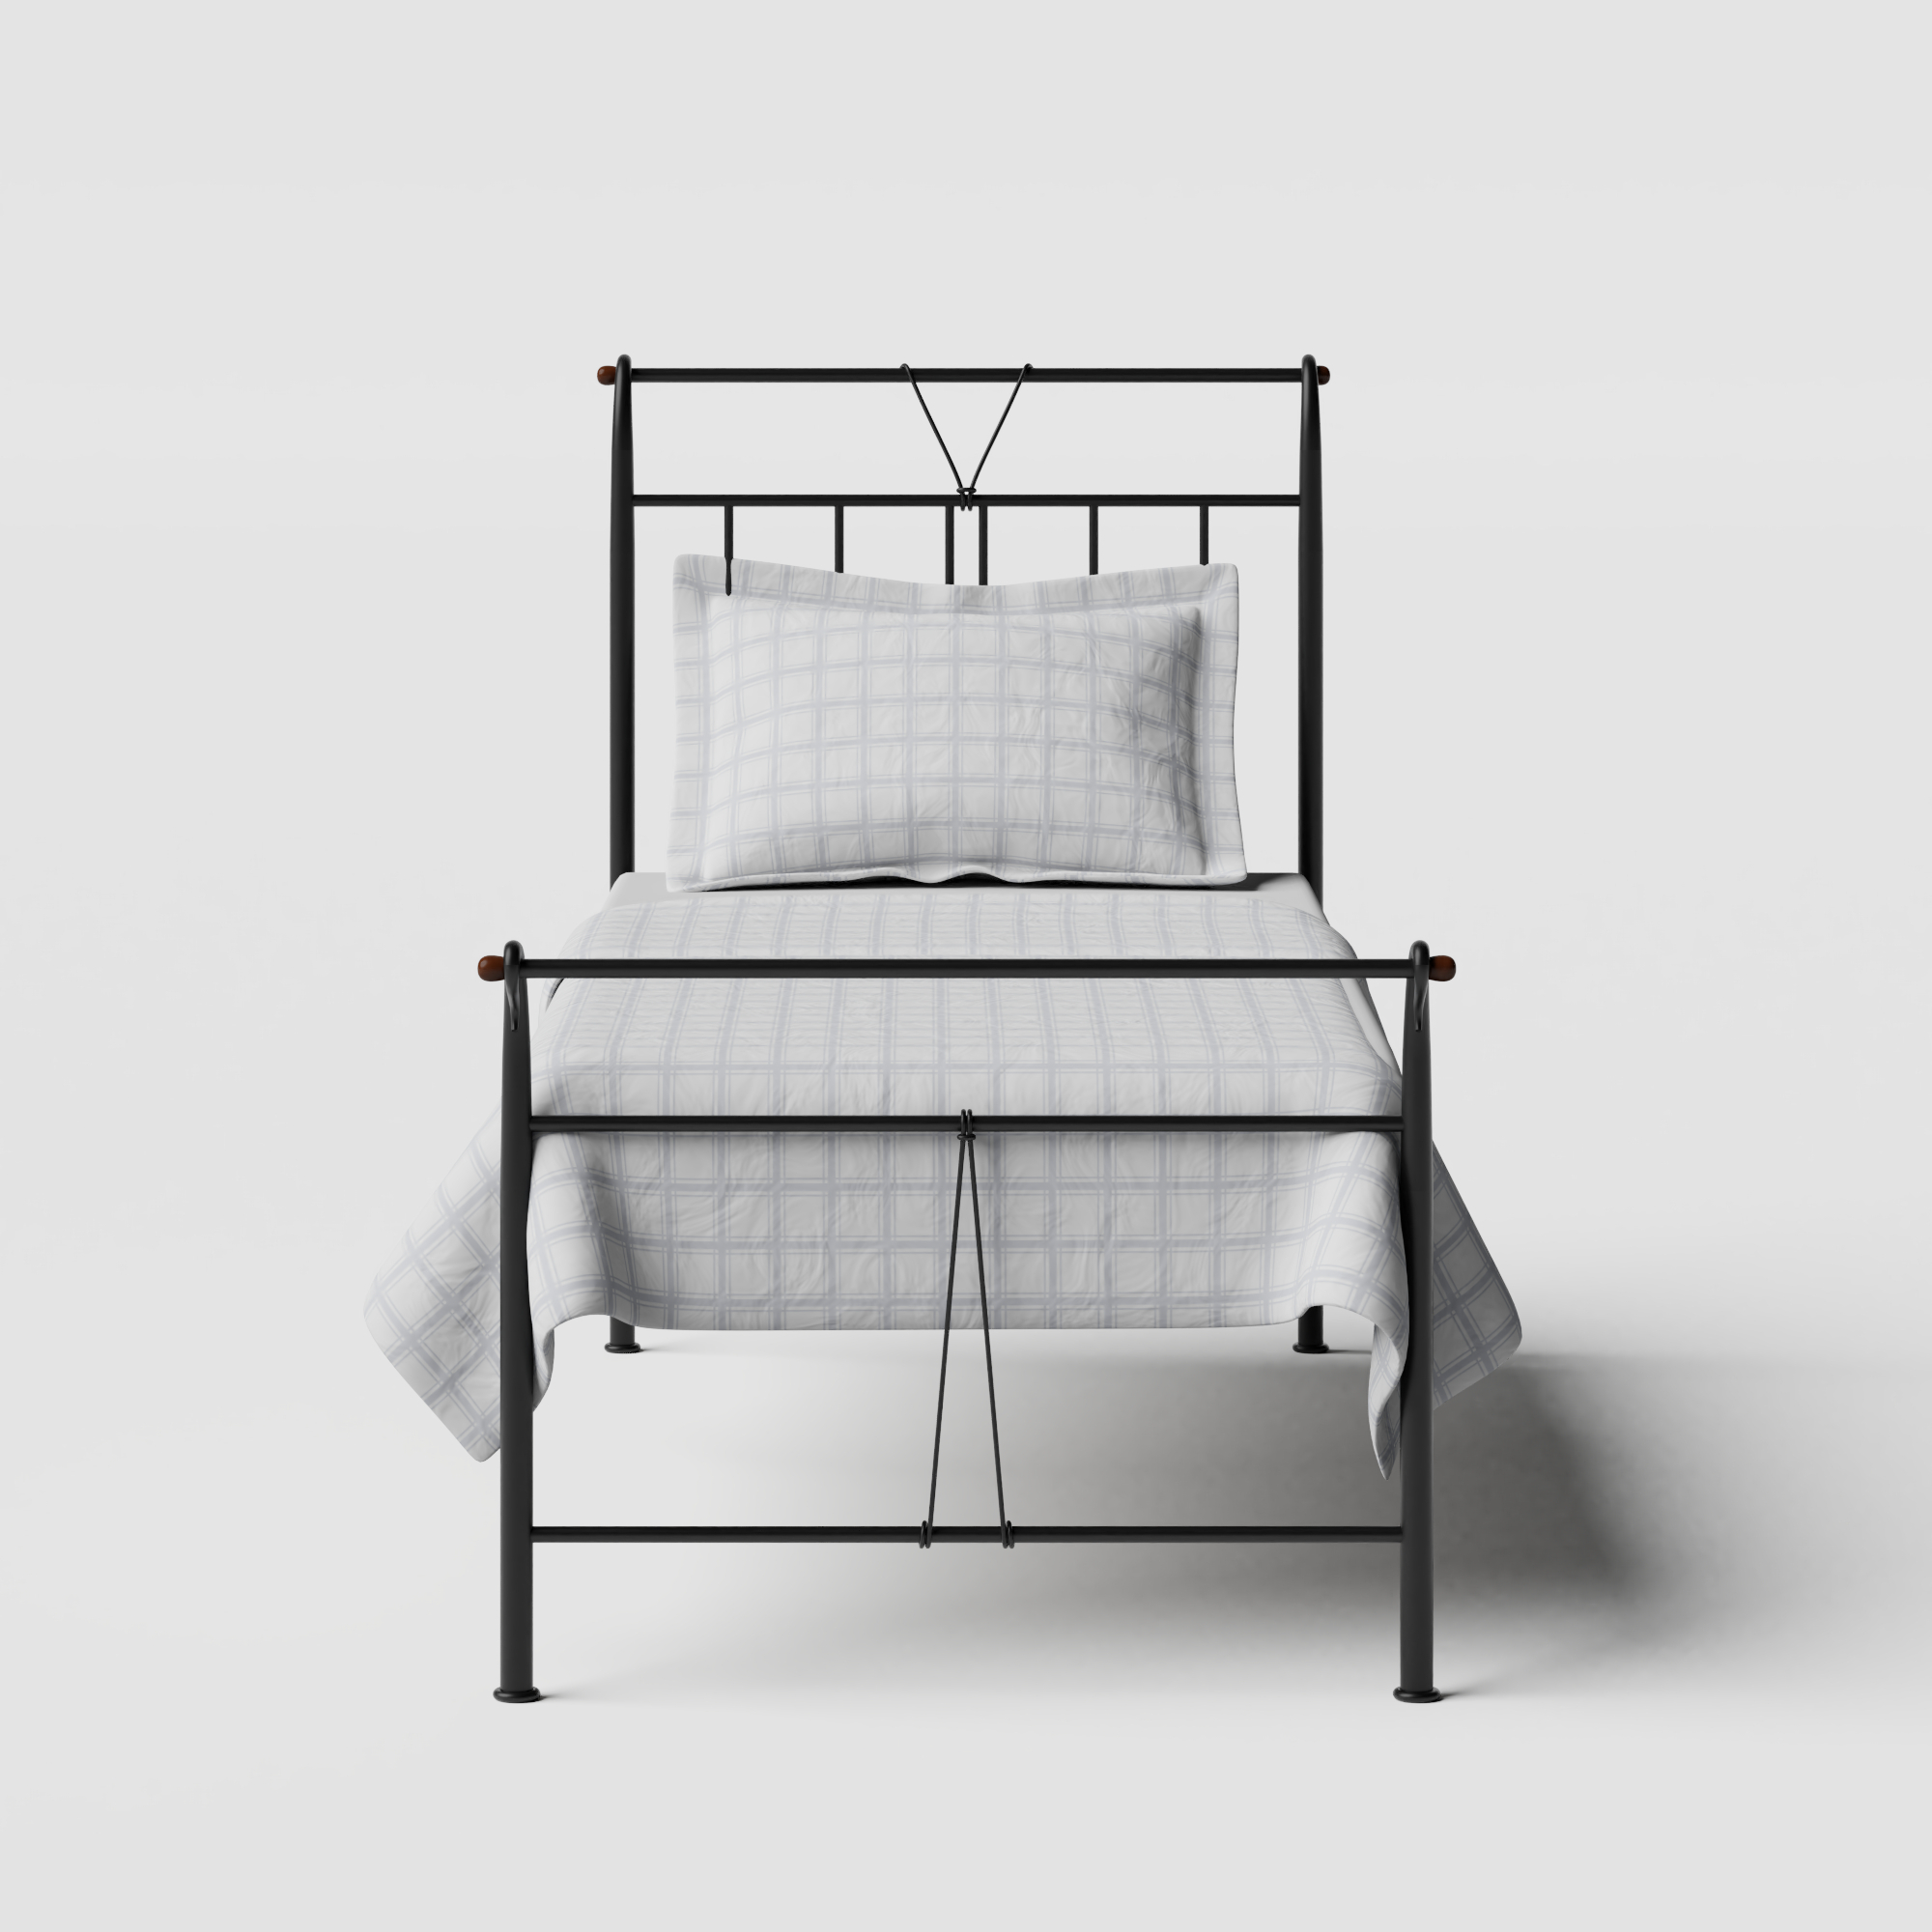 Pellini iron/metal single bed in black